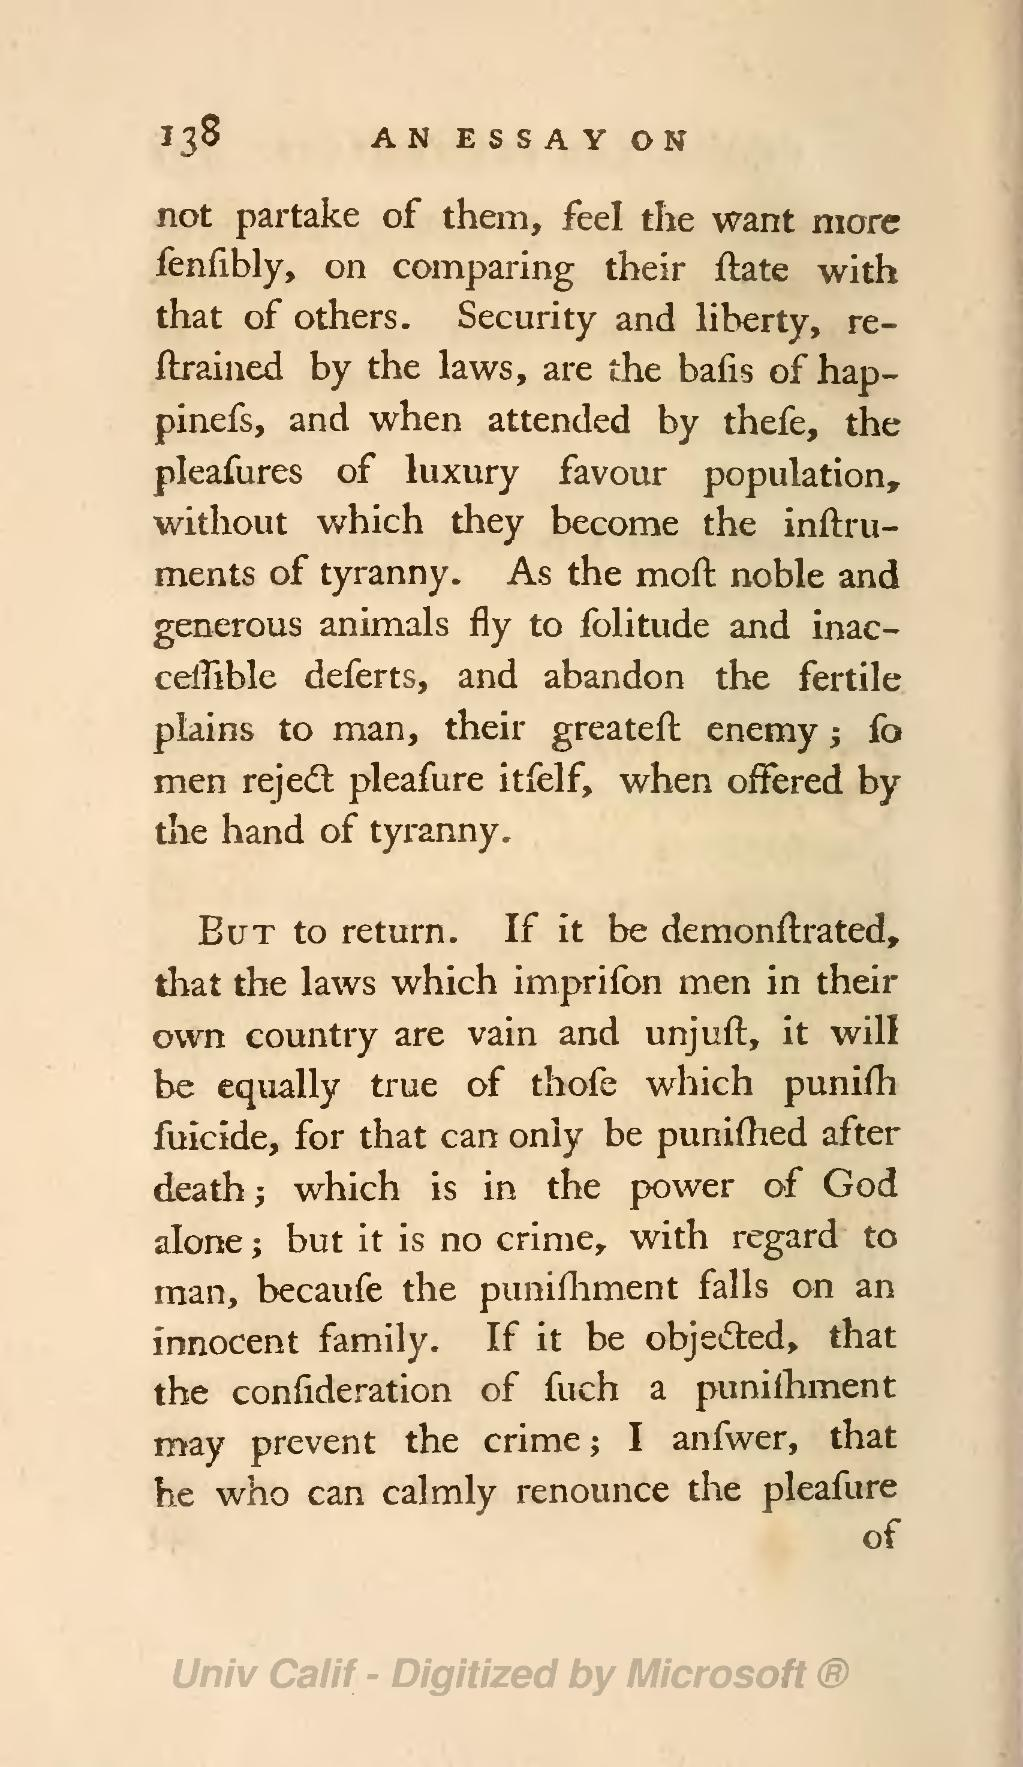 page essay on crimes and punishments djvu wikisource page essay on crimes and punishments 1775 djvu 150 wikisource the online library